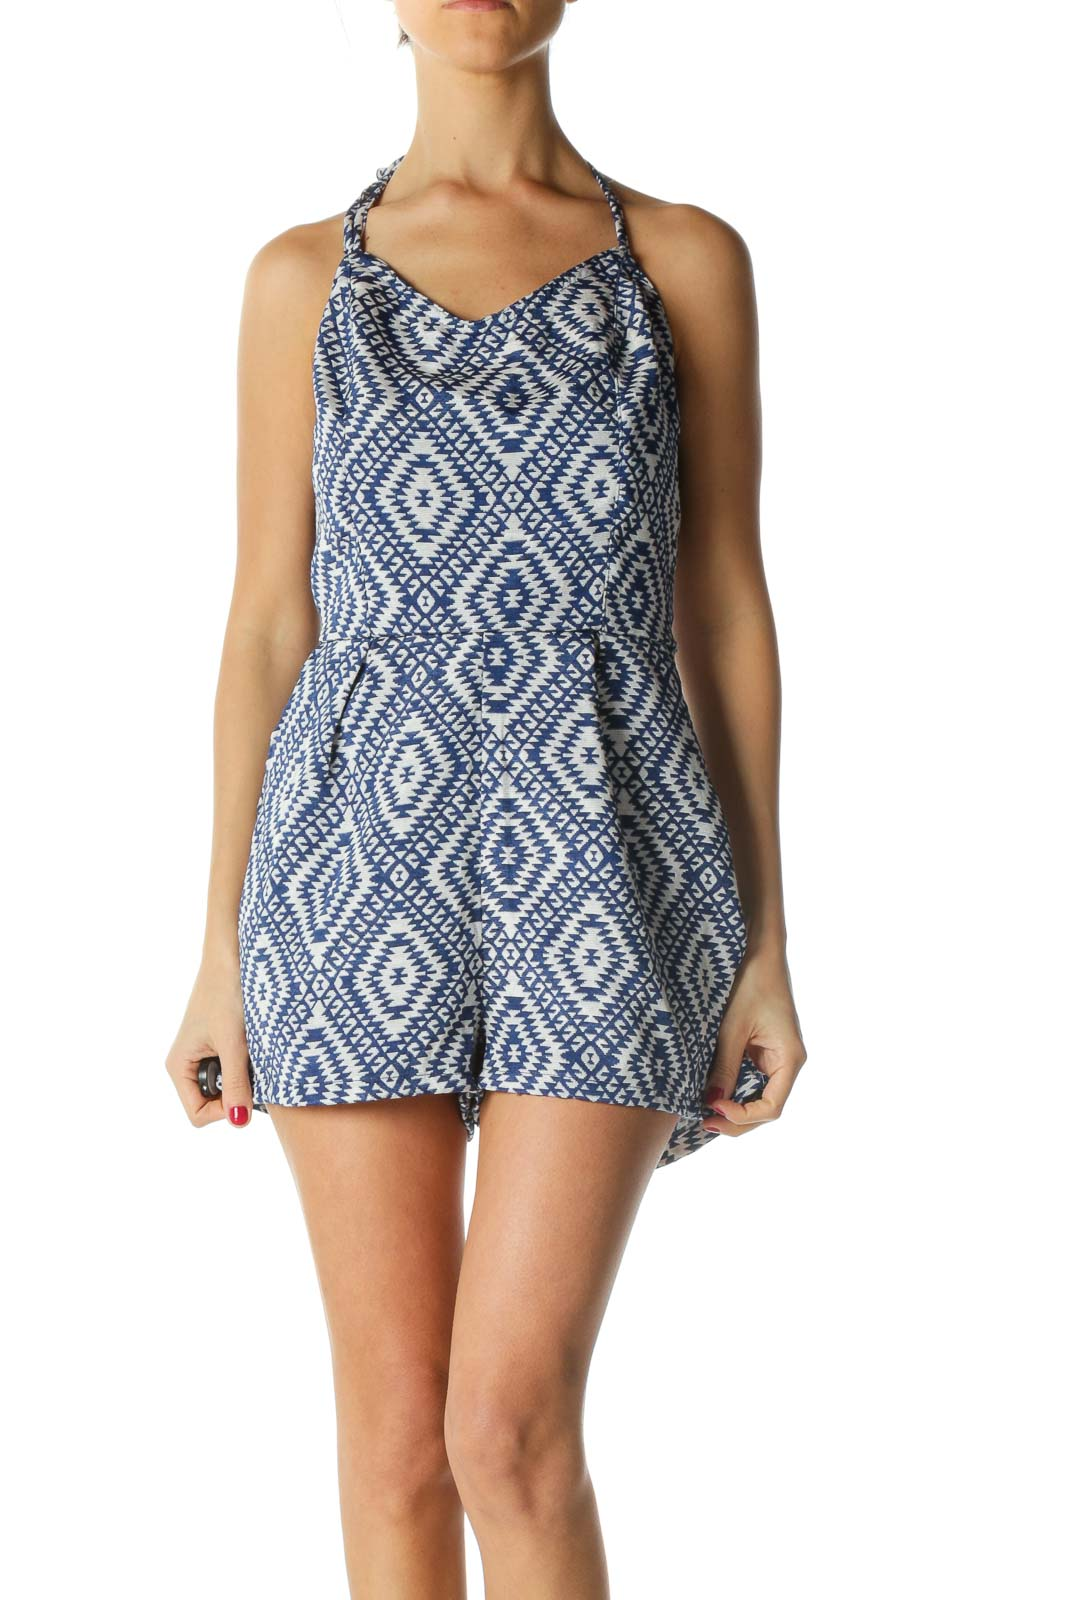 Blue and Silver Tribal Print Halter Romper Front